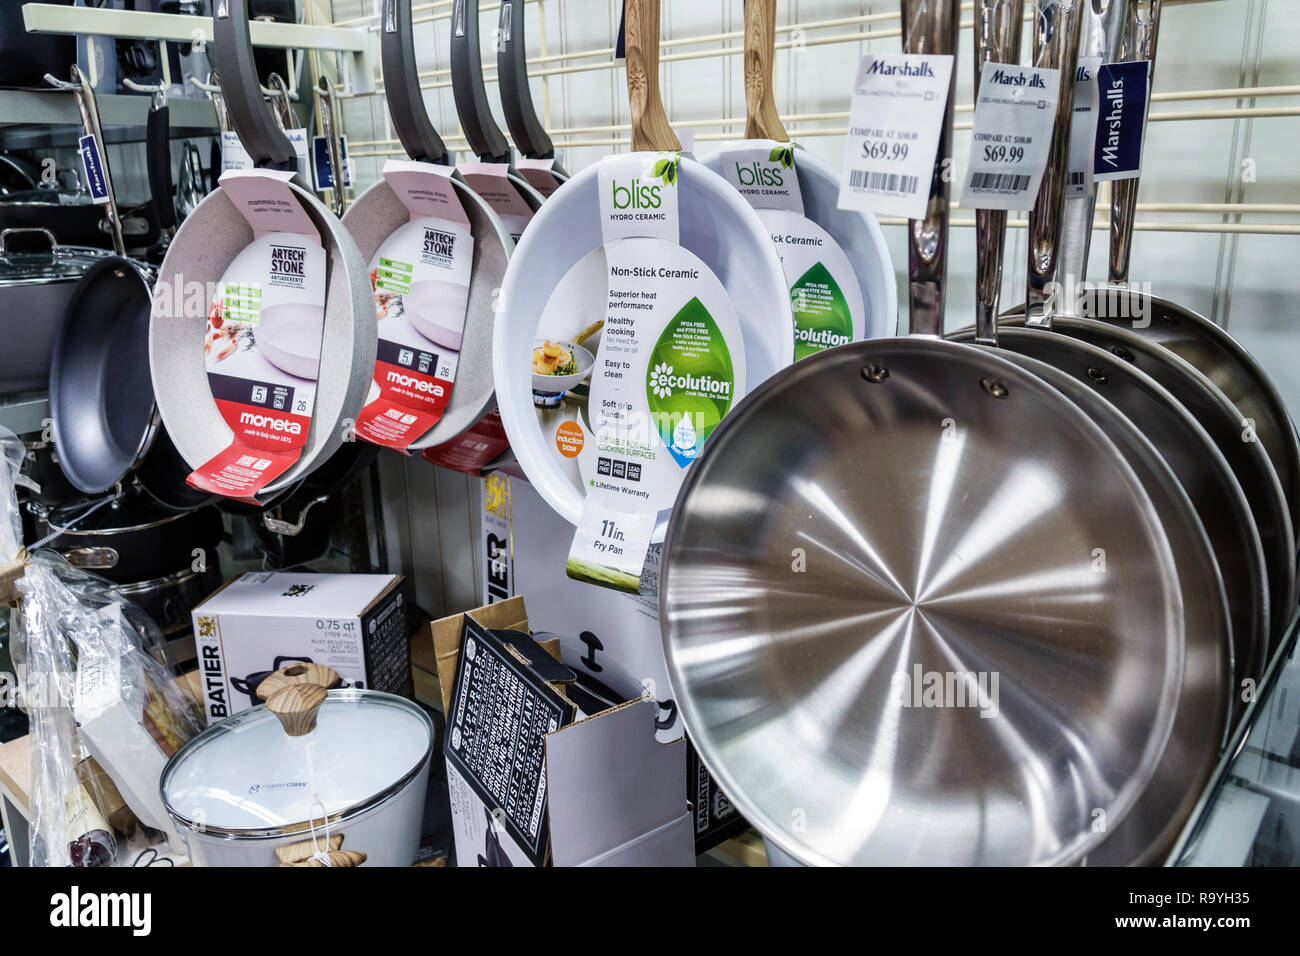 Fort Ft. Lauderdale Florida Sunrise Sawgrass Mills Mall shopping Marshalls Discount Department Store inside display sale cooking pans - Stock Image